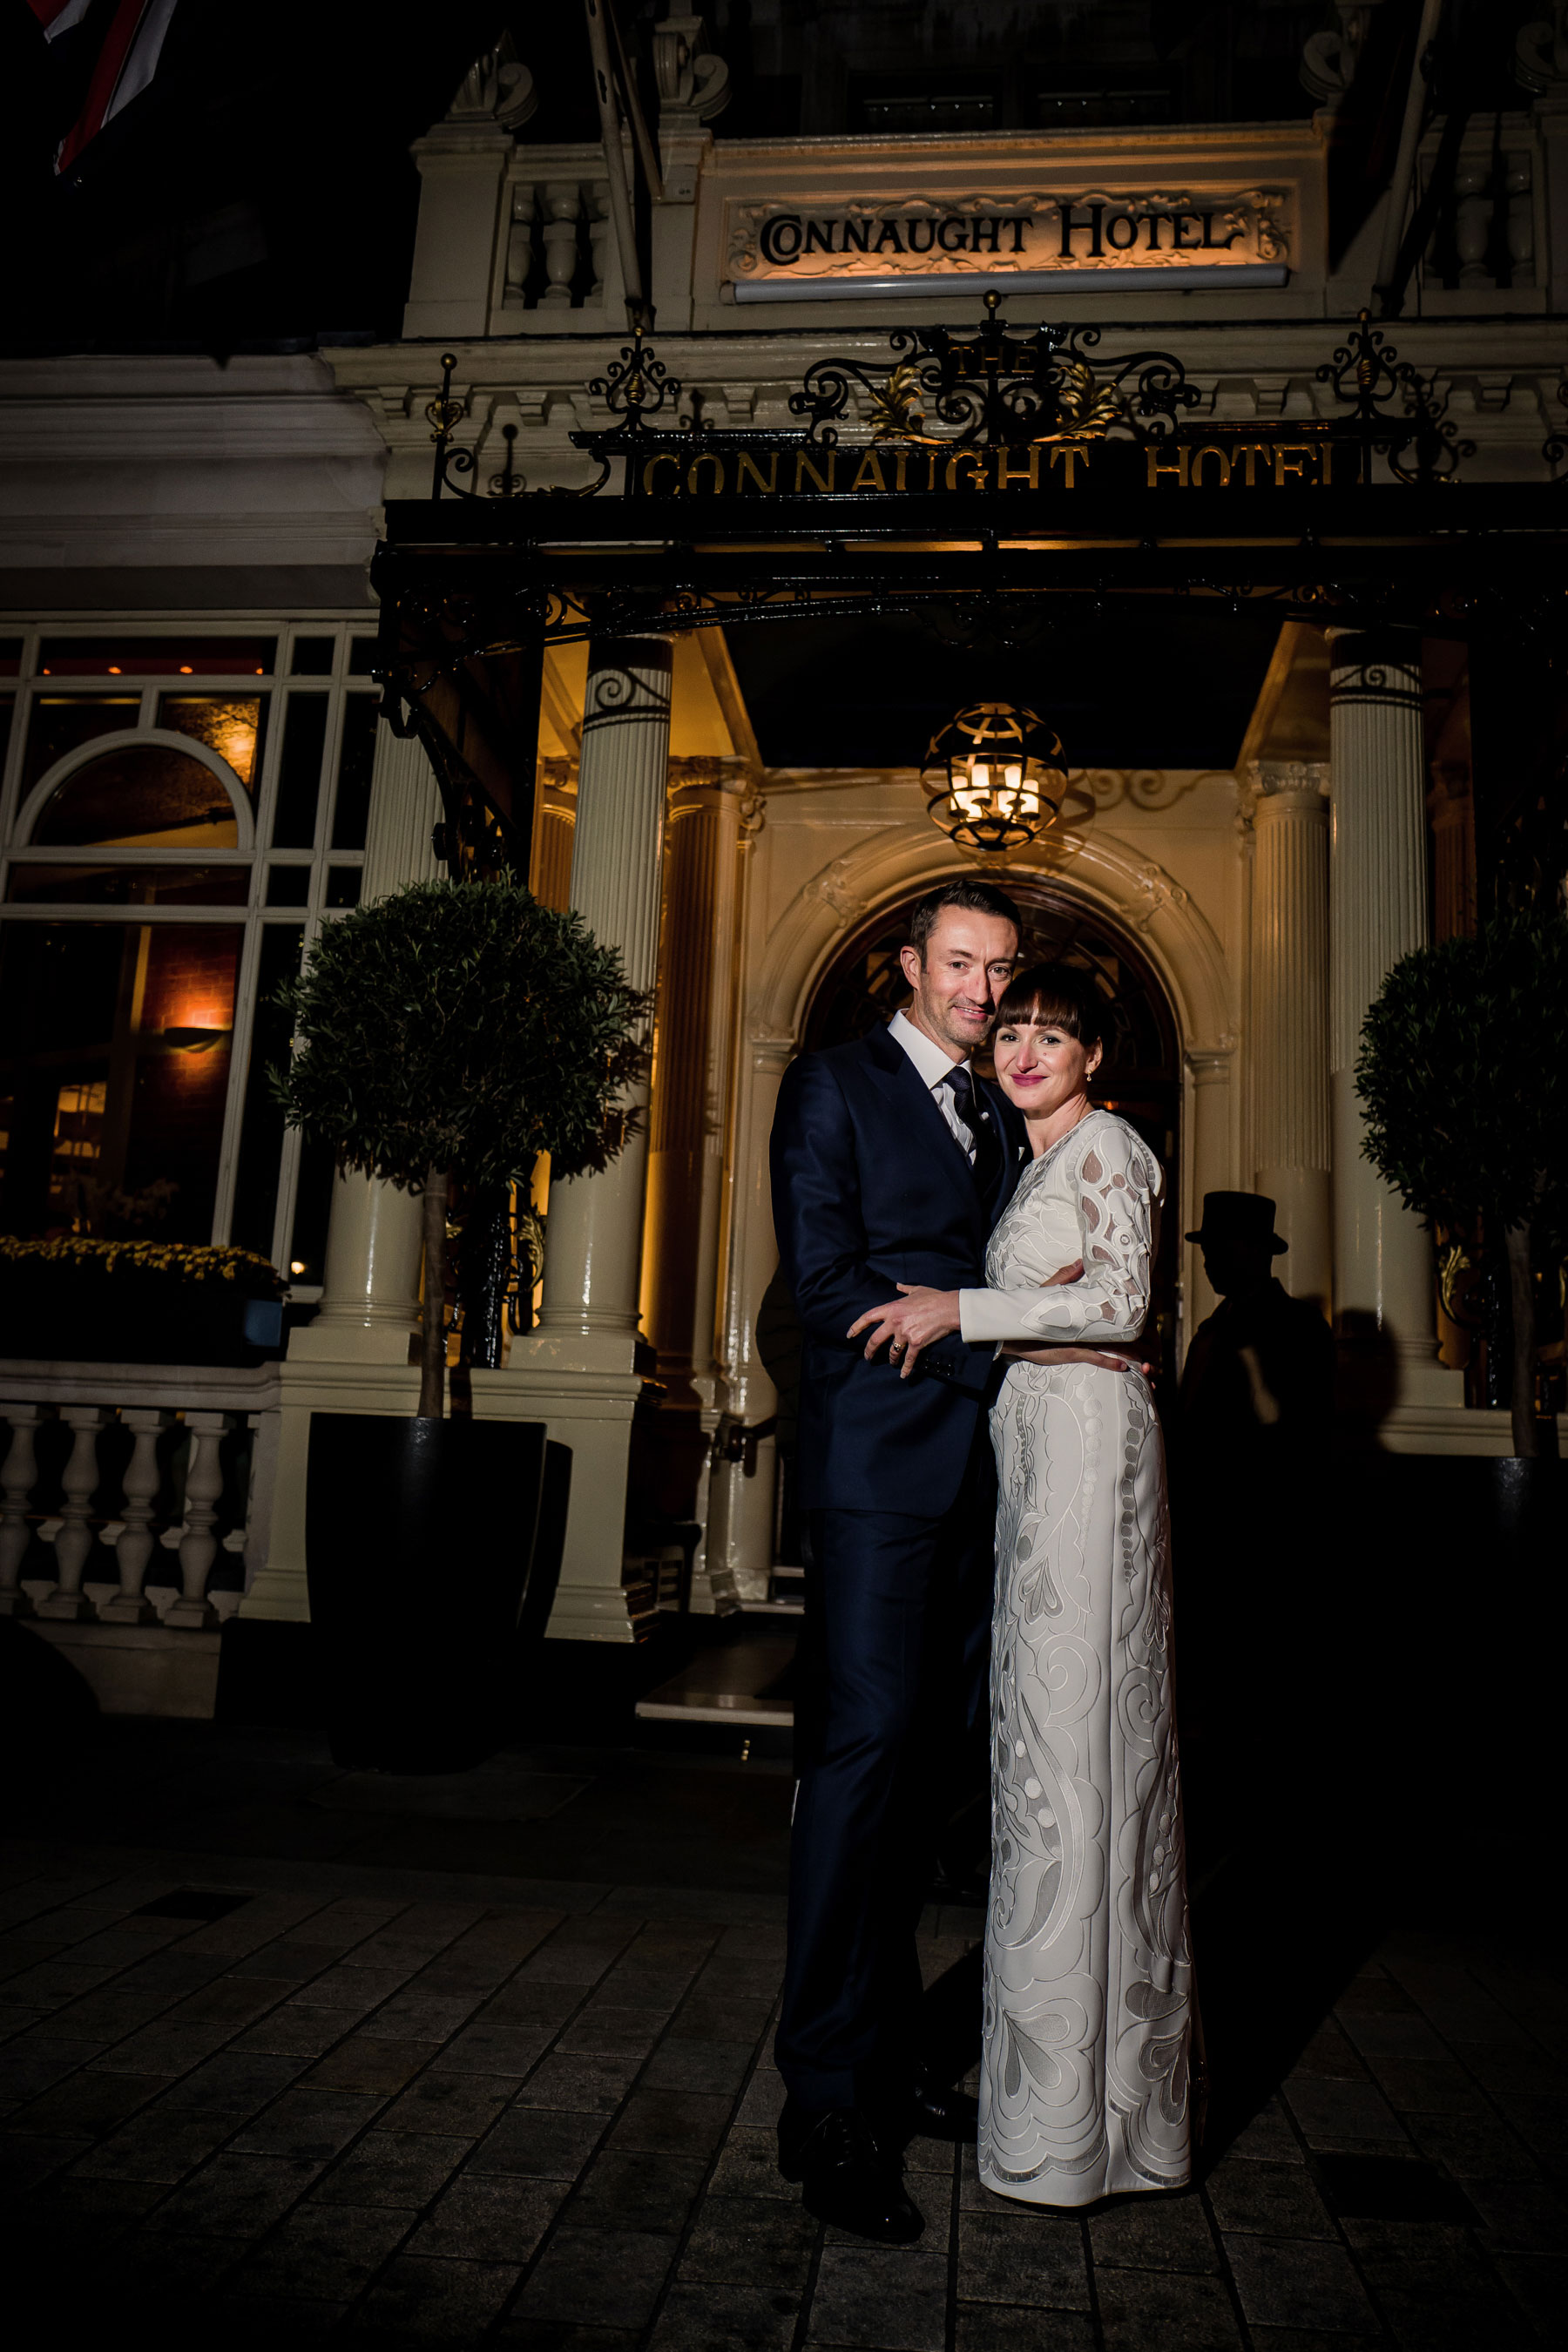 connaught-hotel-wedding-0039